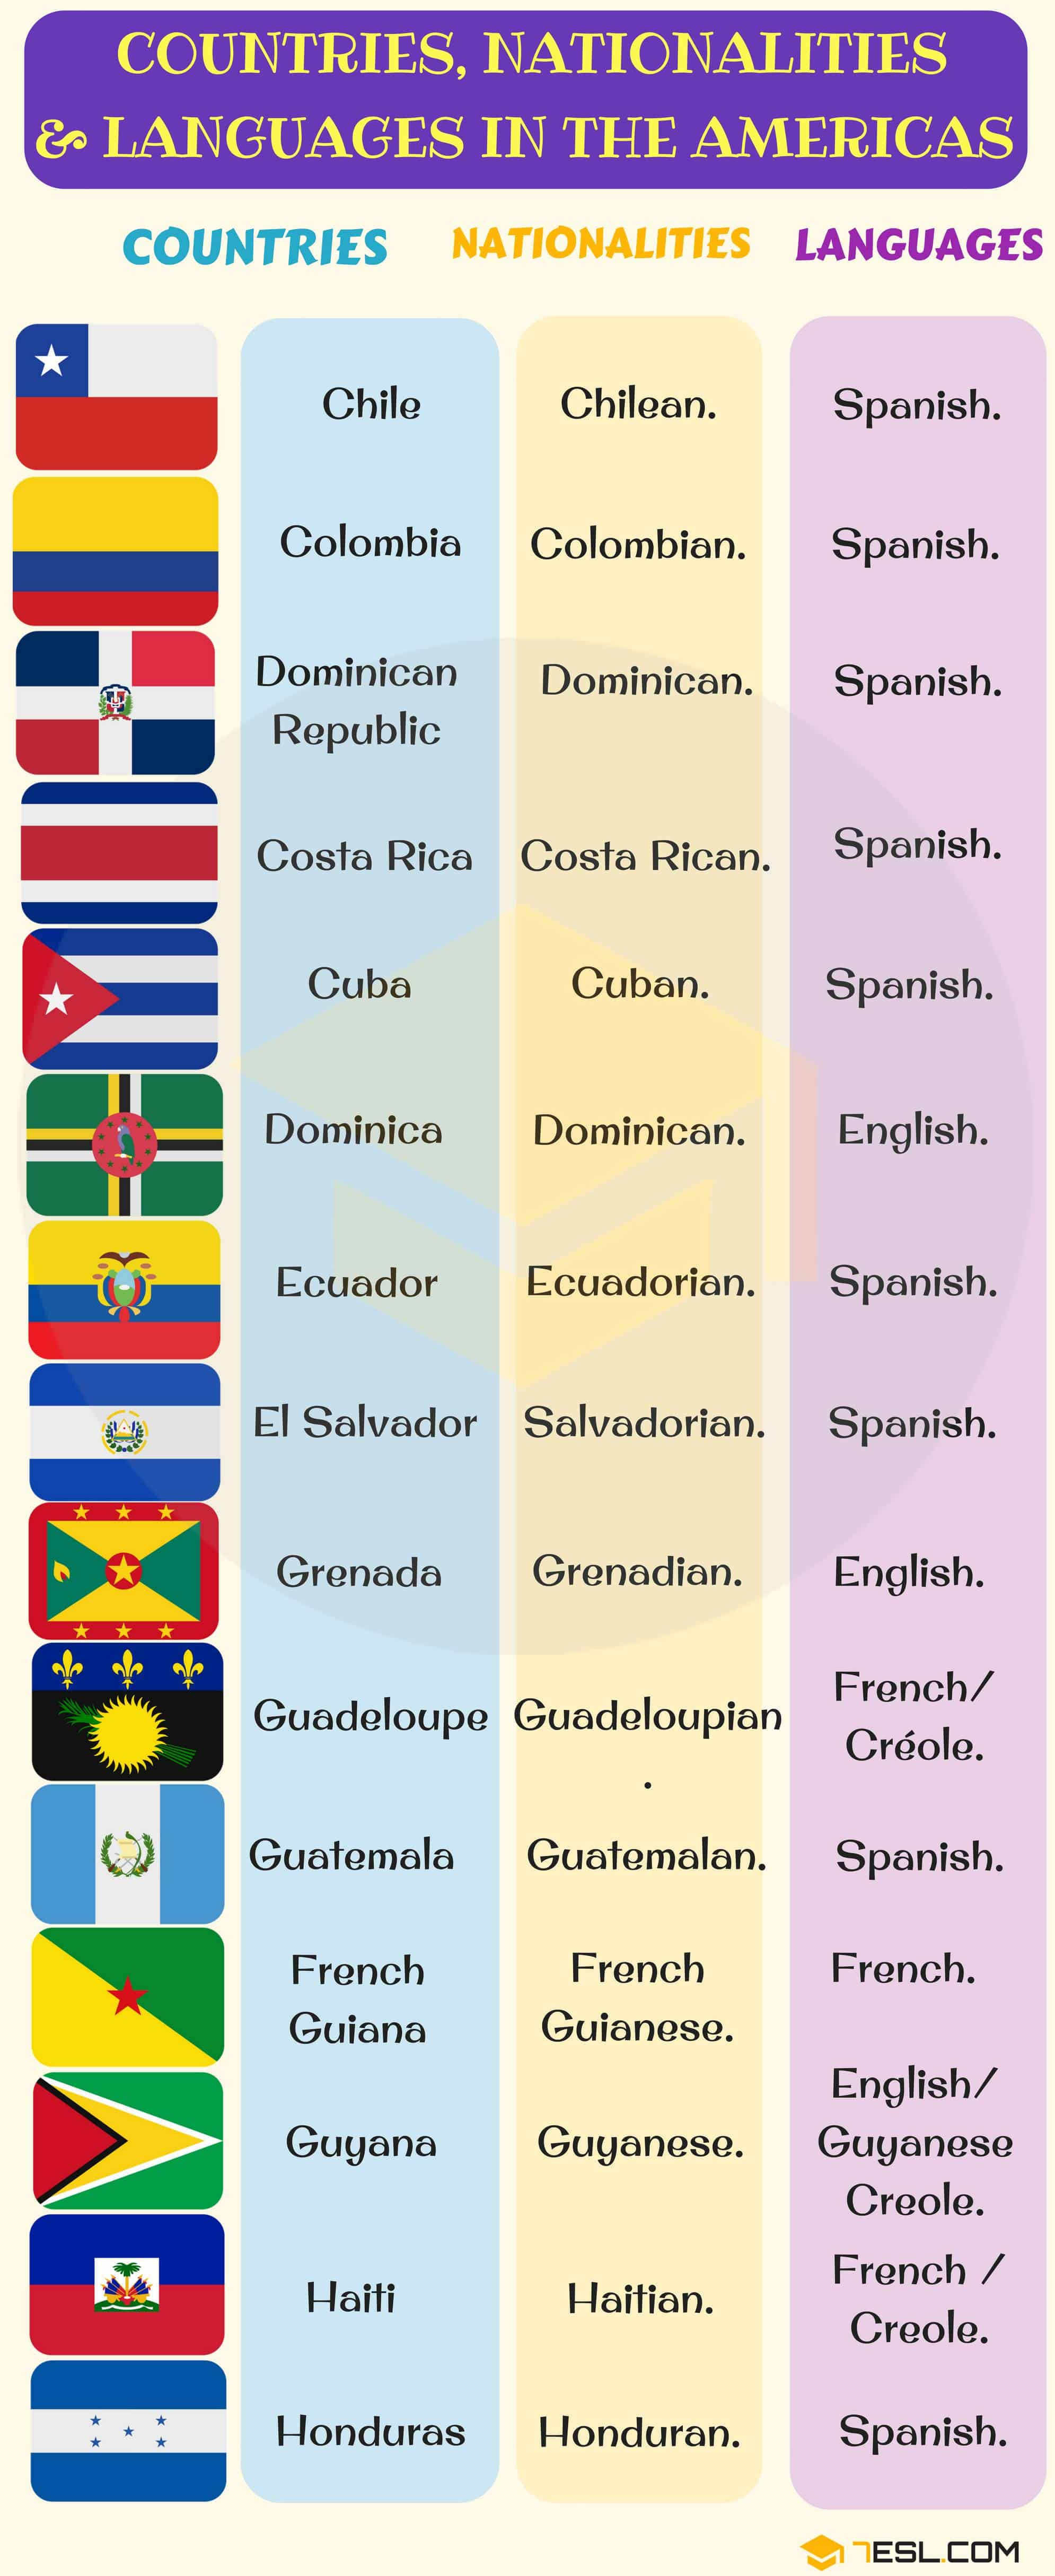 Languages, Countries and Nationalities | List of Countries Image 11